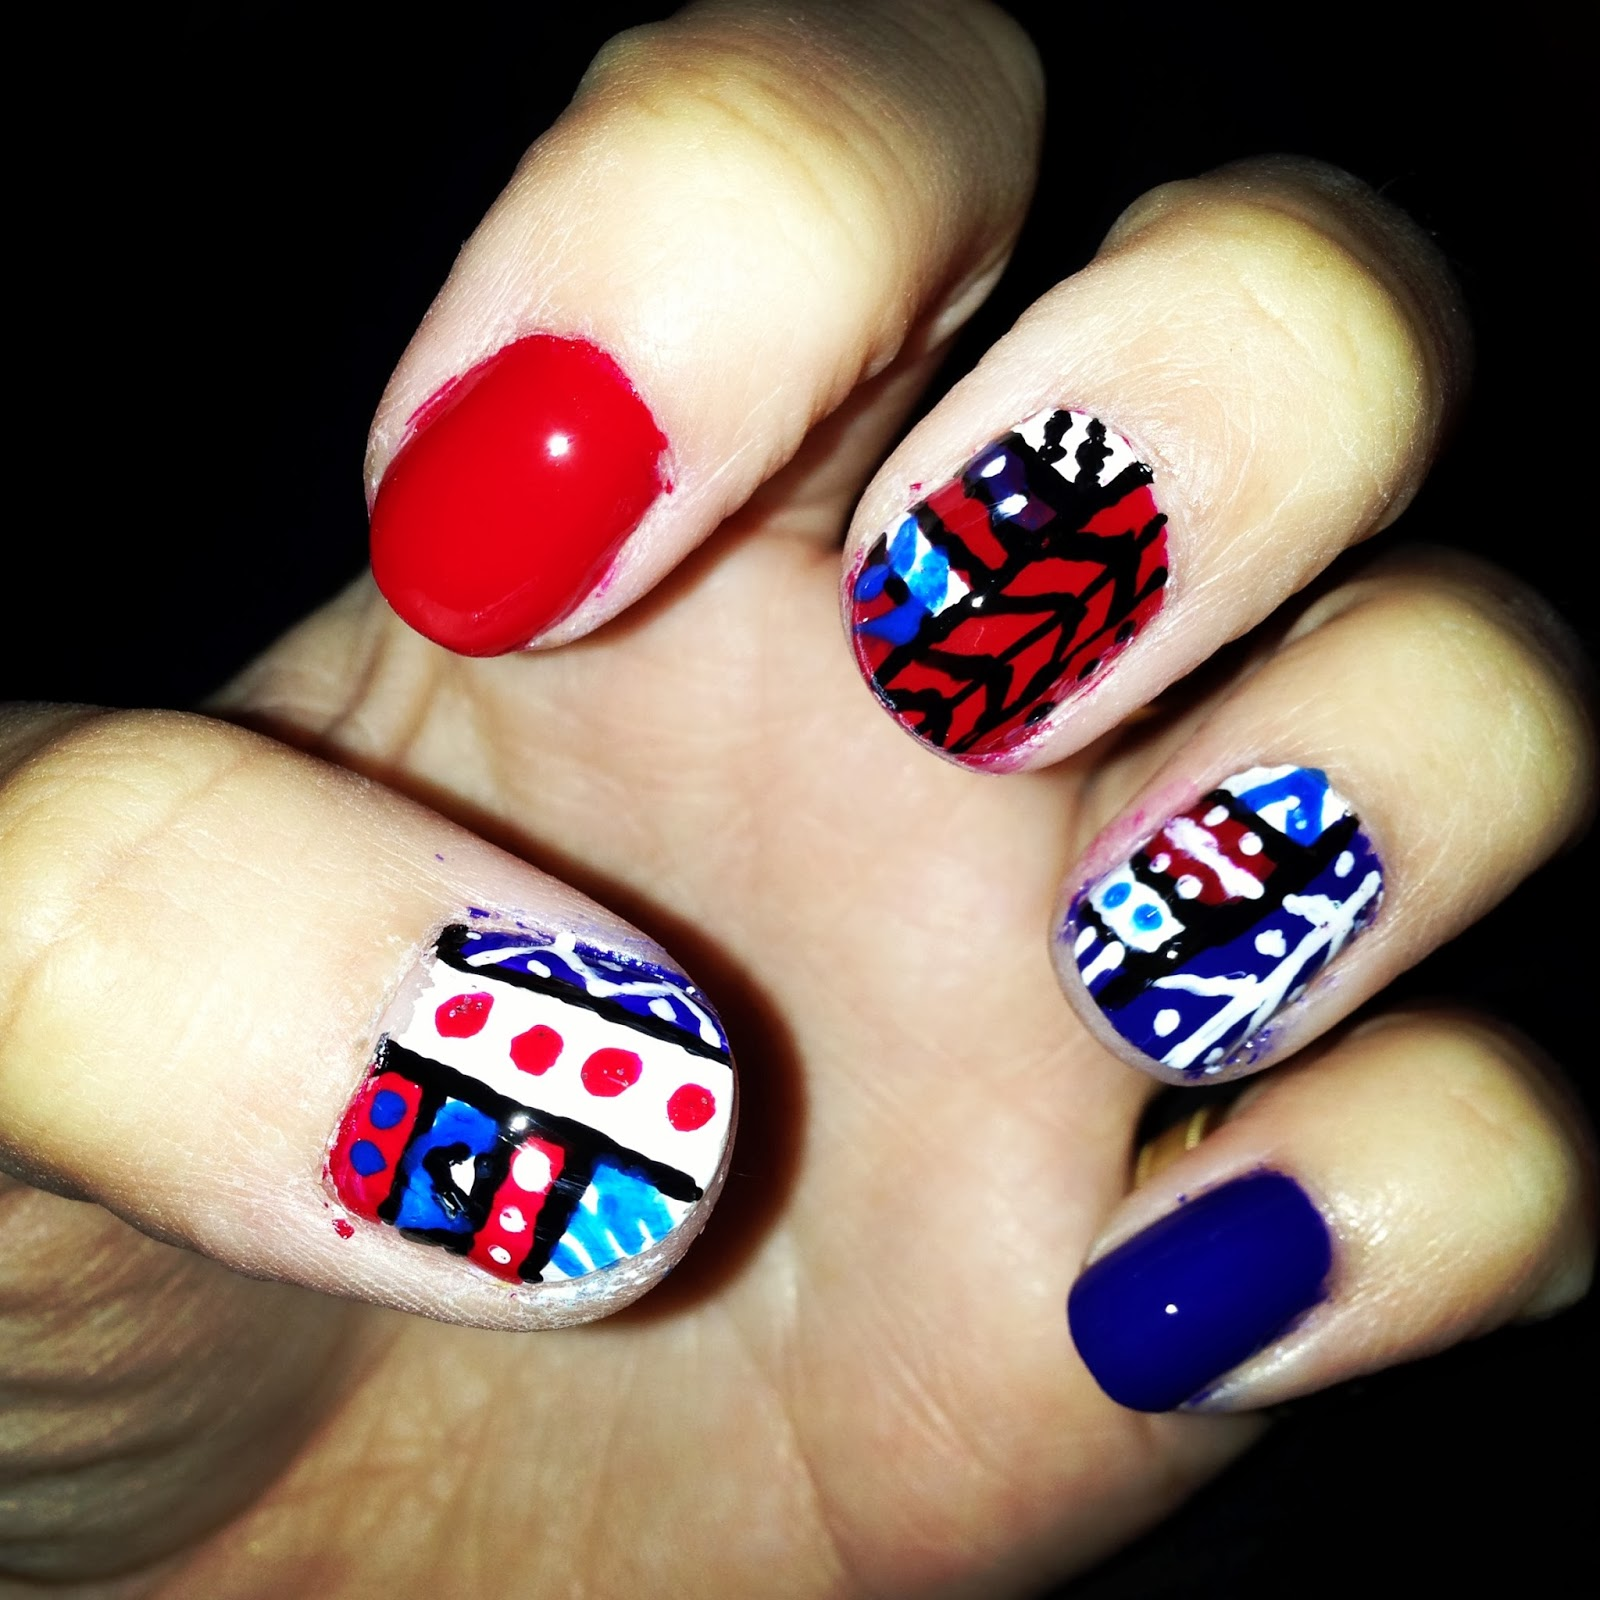 DIY Tribal Nail Art - Jersey Girl, Texan Heart